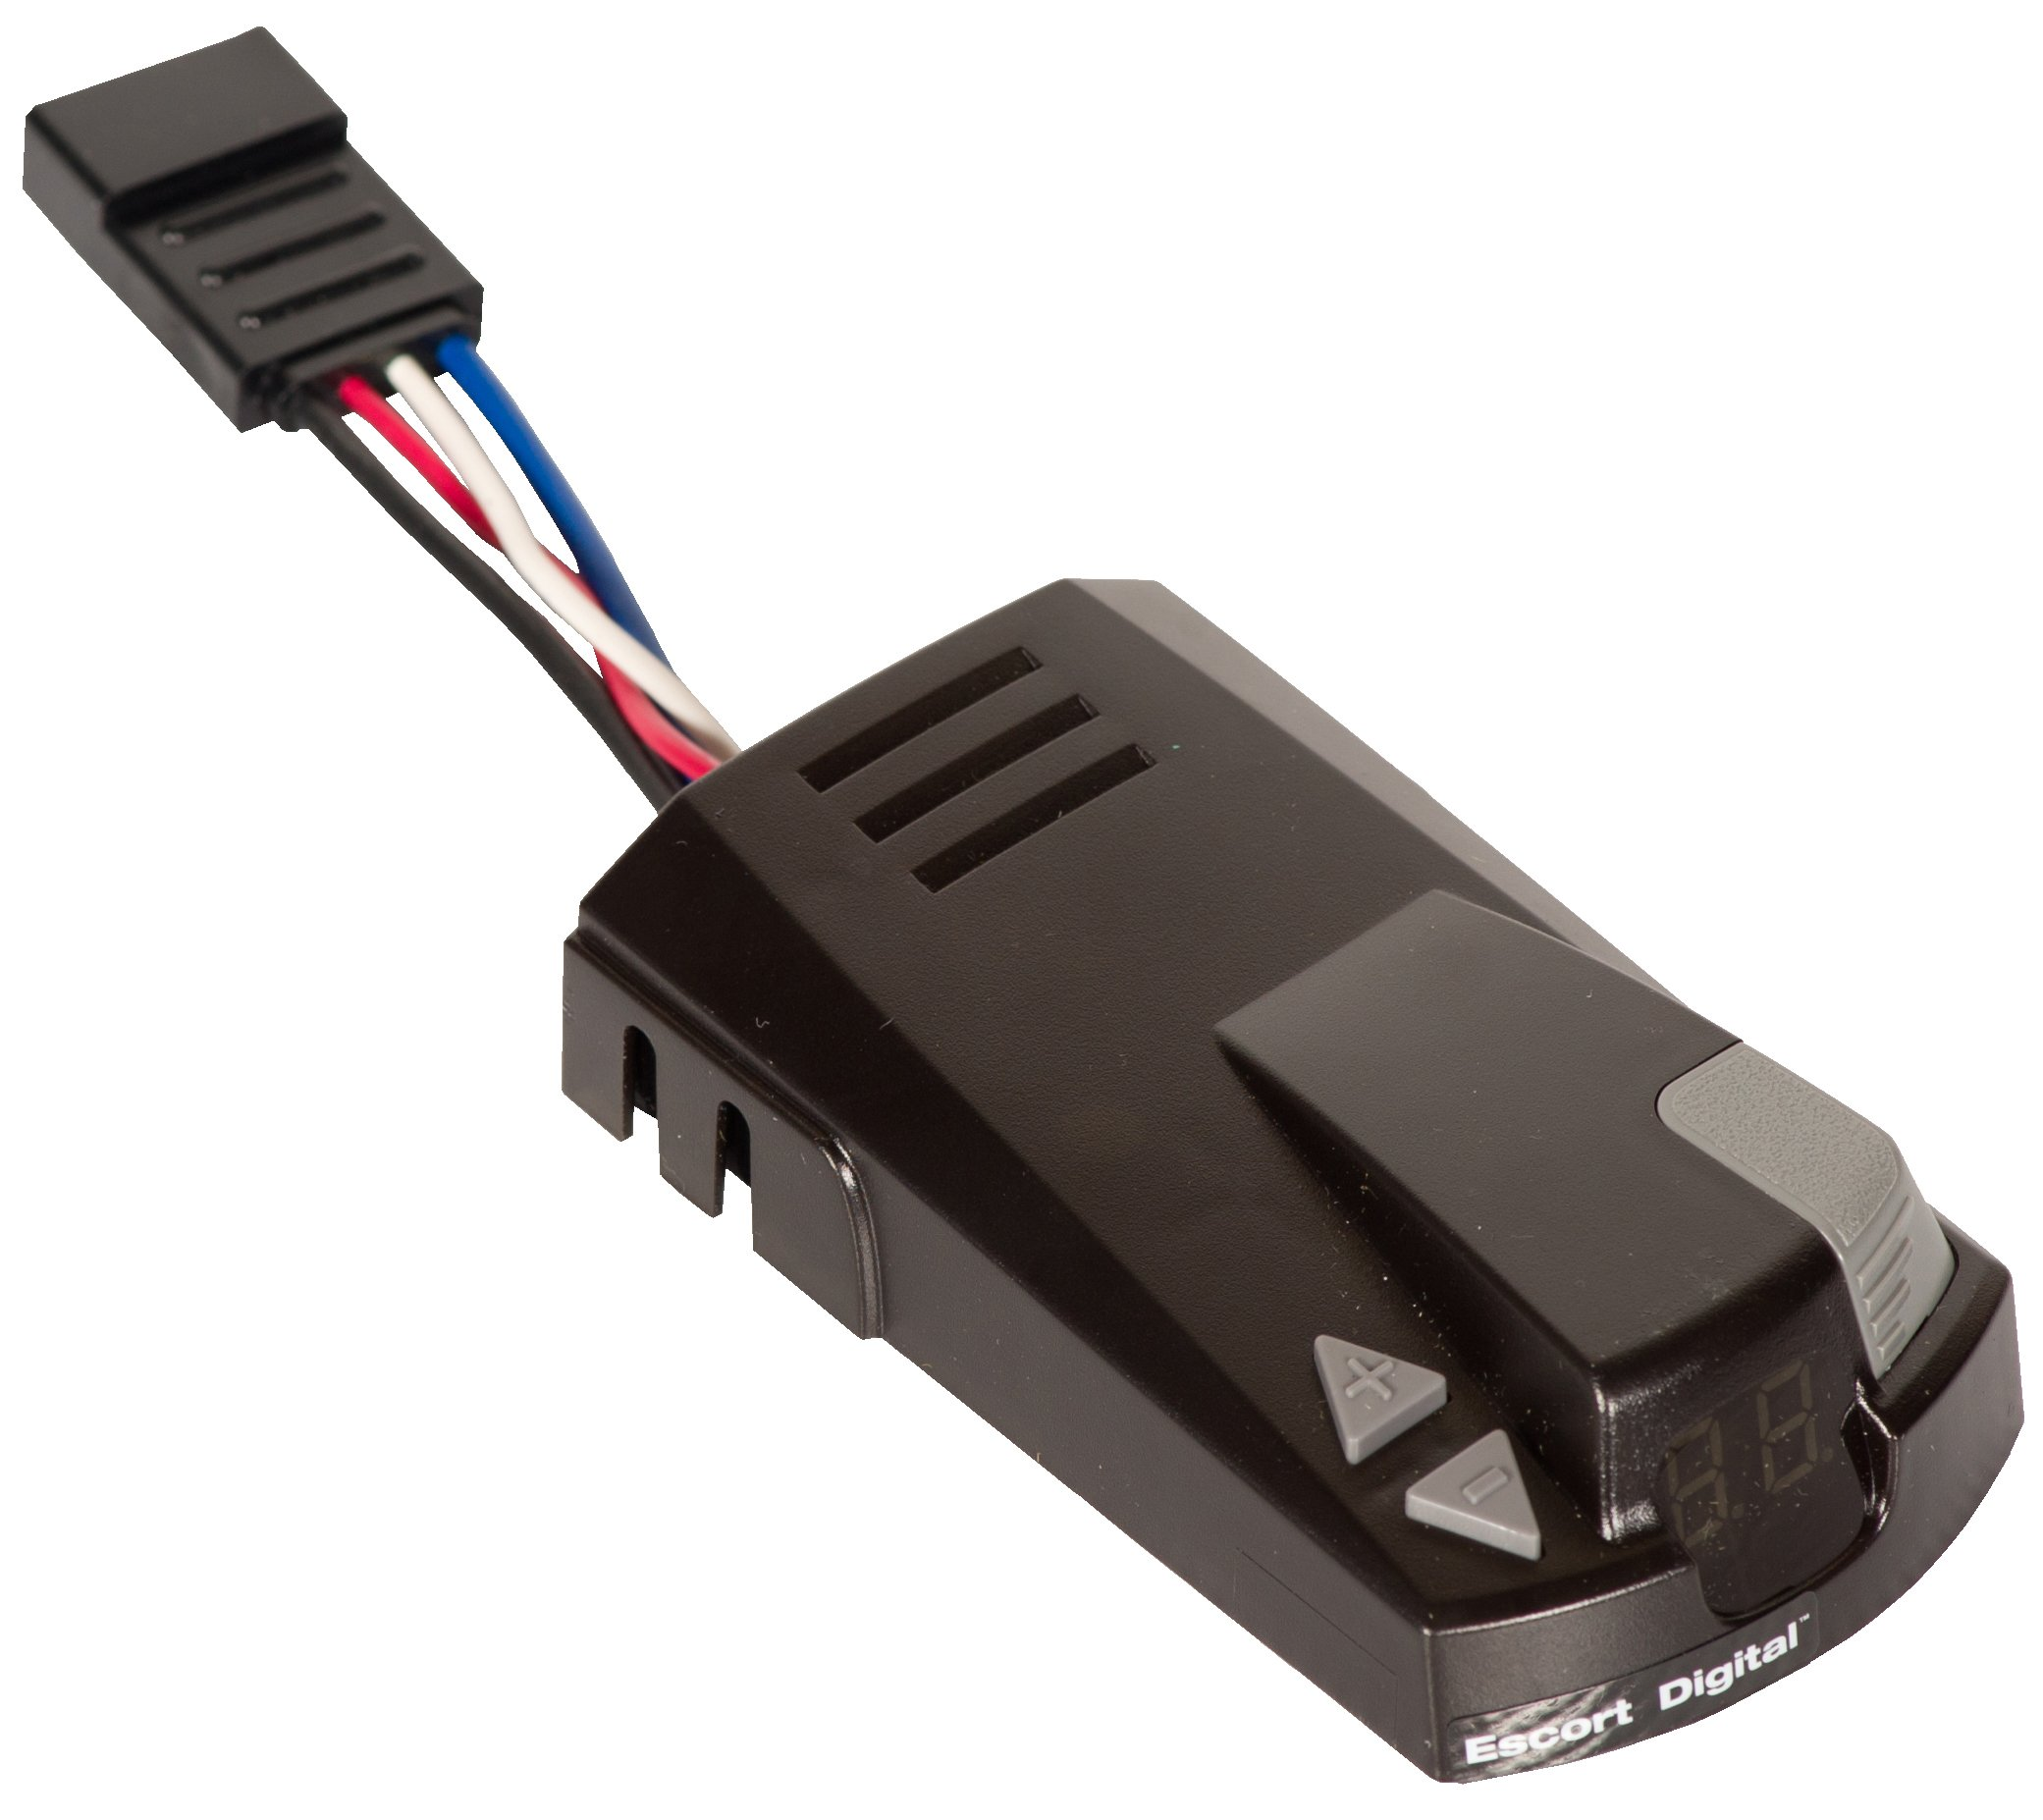 Husky 31898 Escort Digital Brake Controller with Flat Connector by Husky